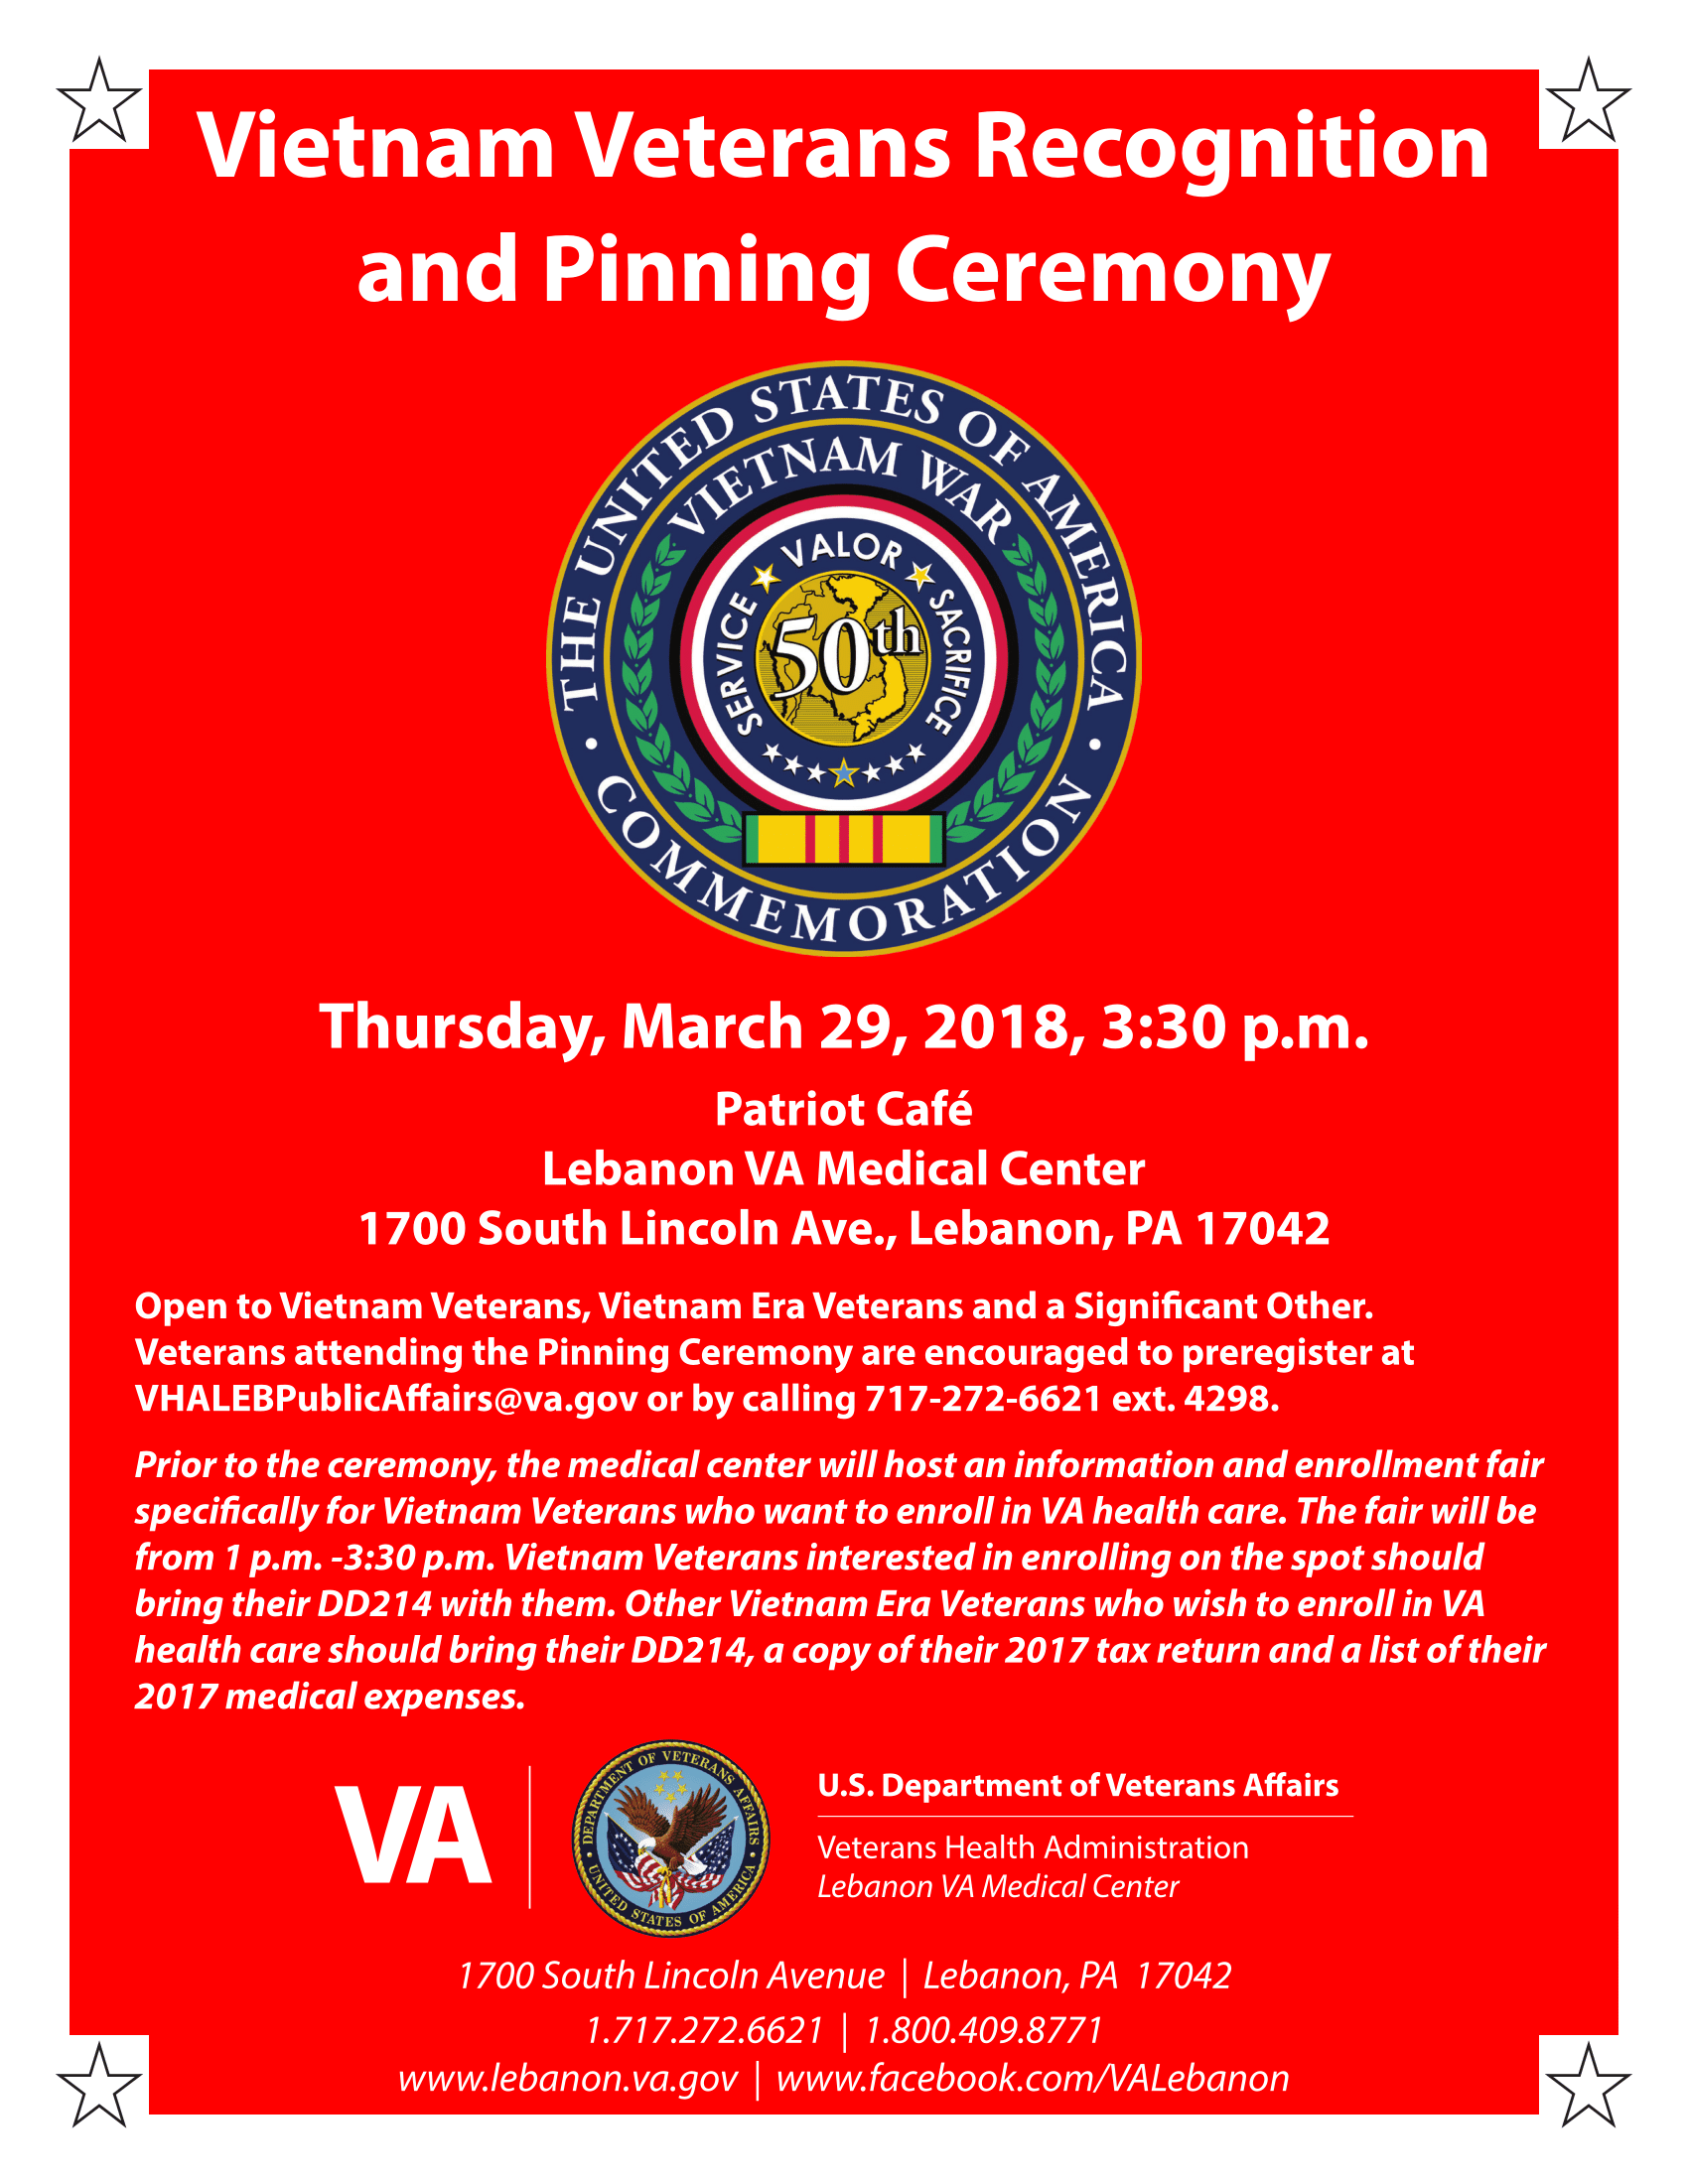 Vietnam Recognition and Pinning Ceremony